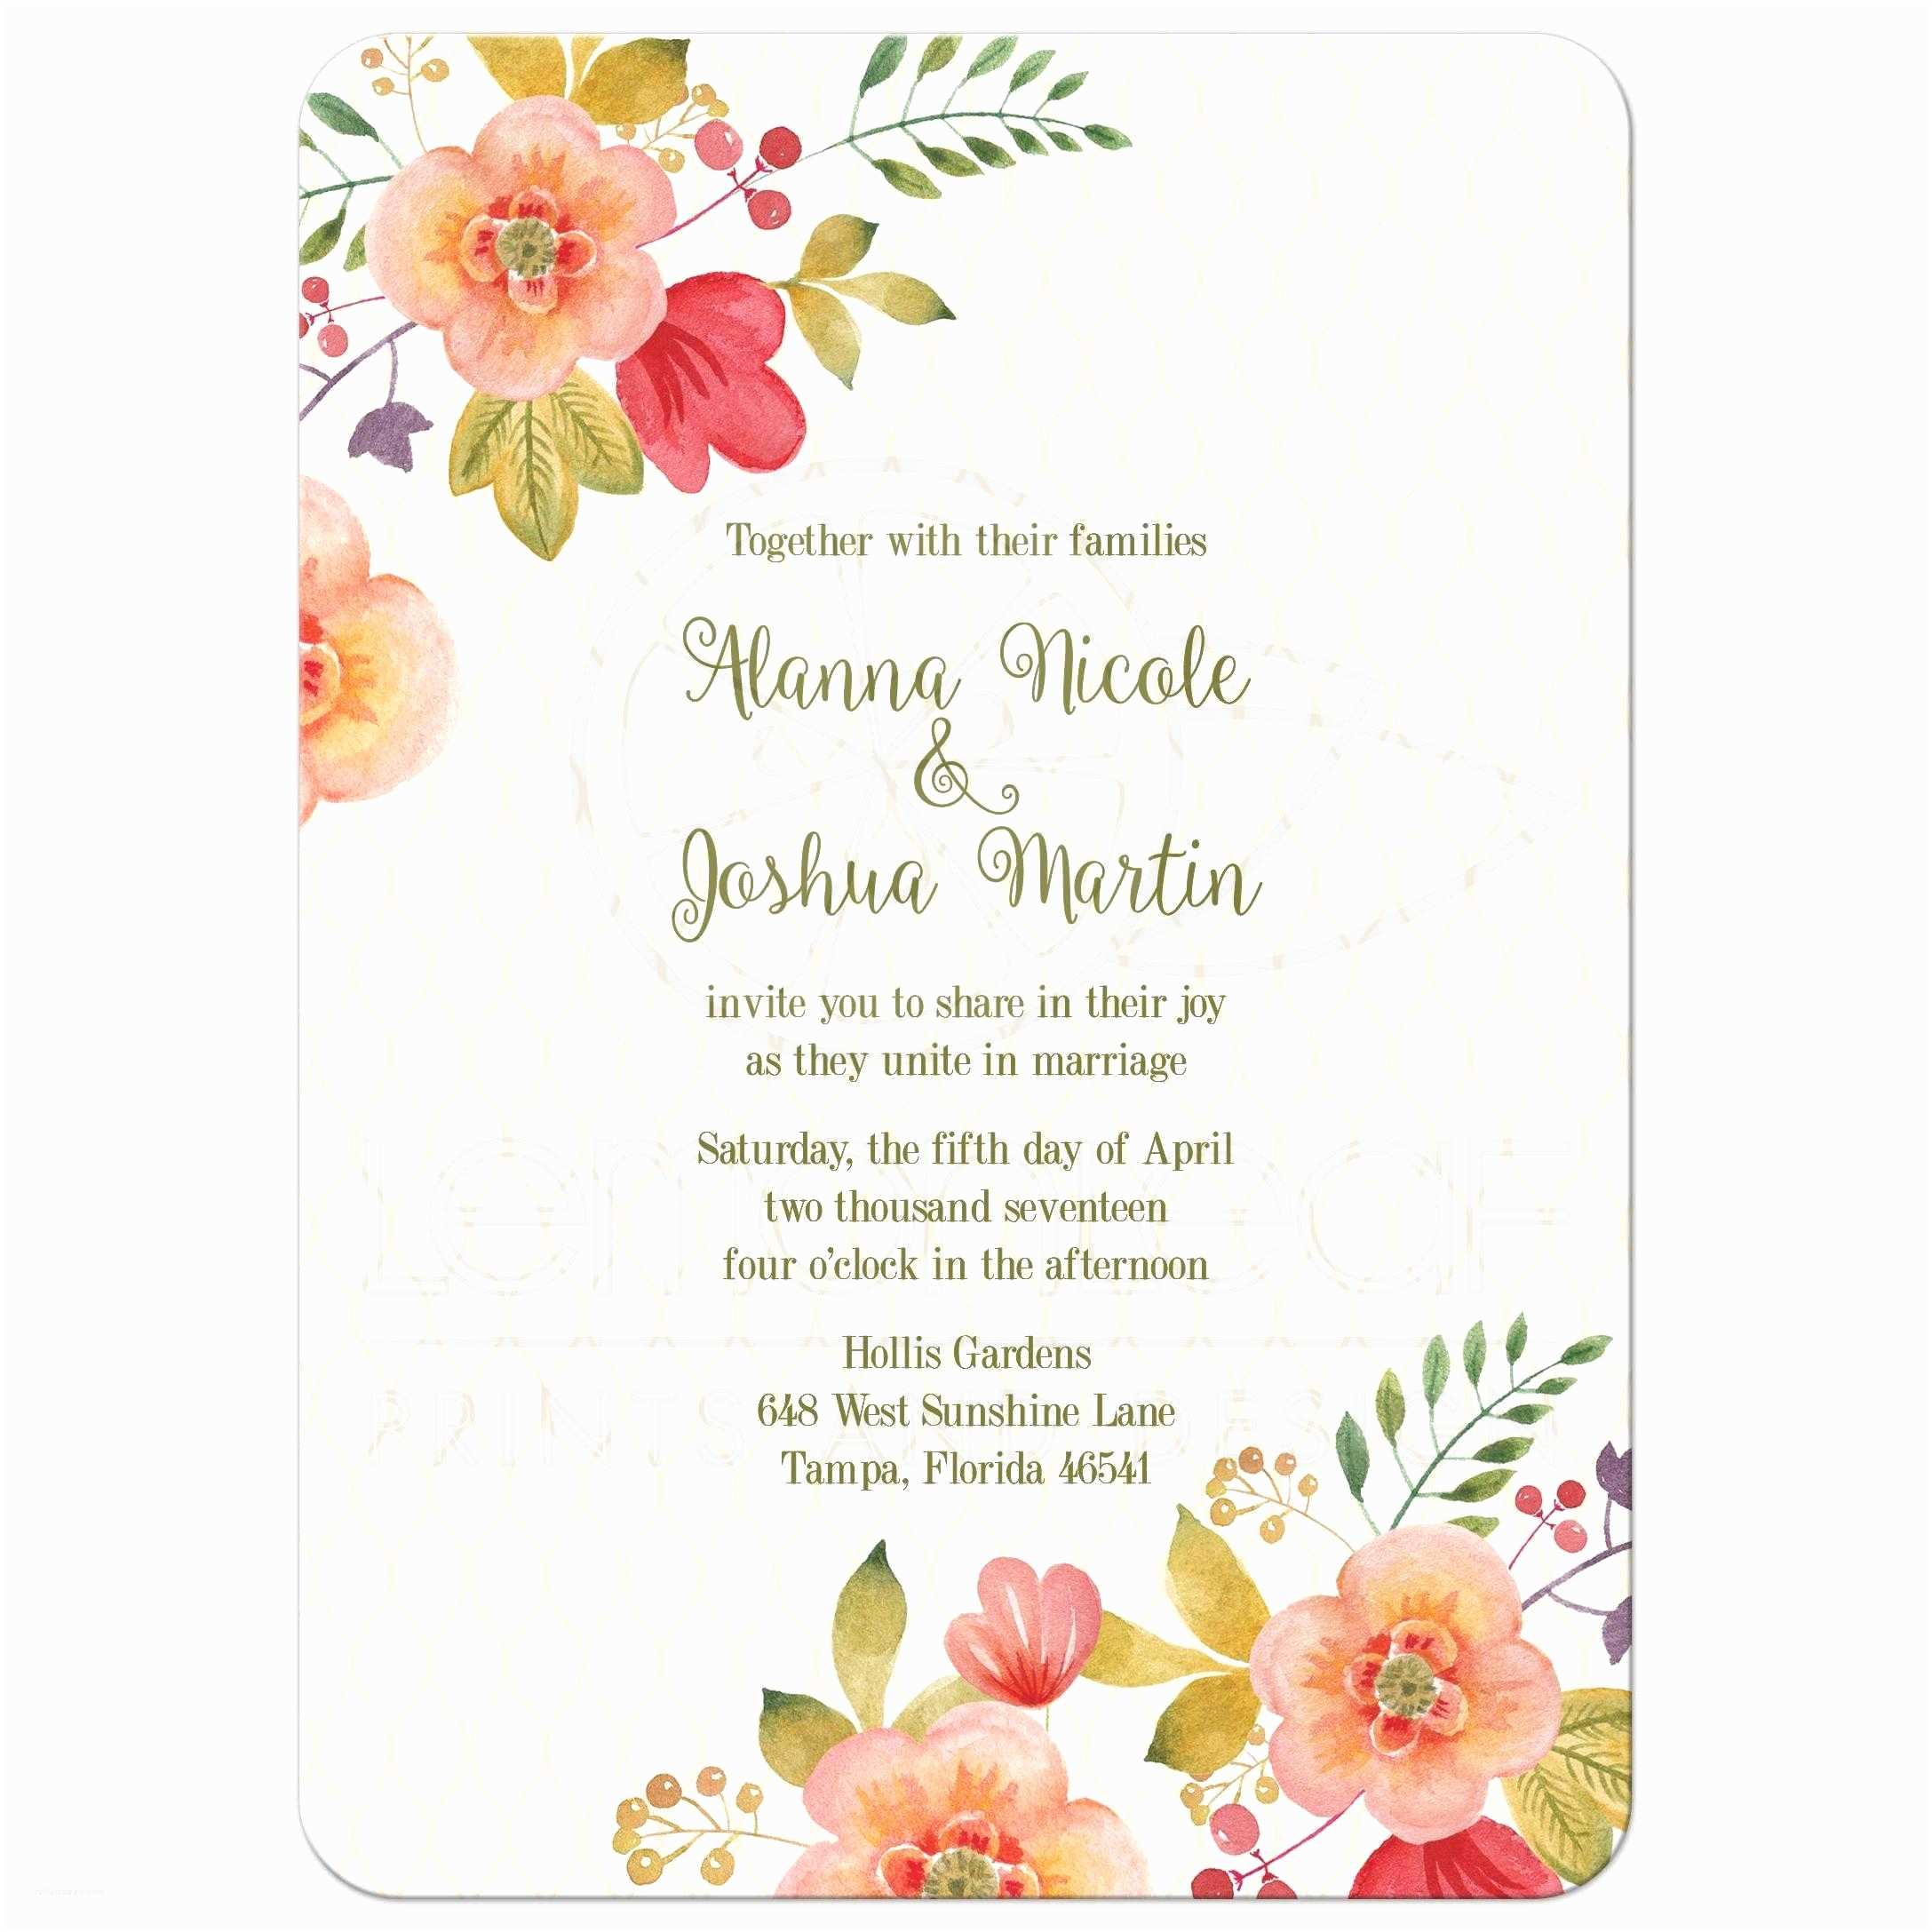 Watercolor Floral Wedding Invitations Floral Wedding Invitation Olive Green And